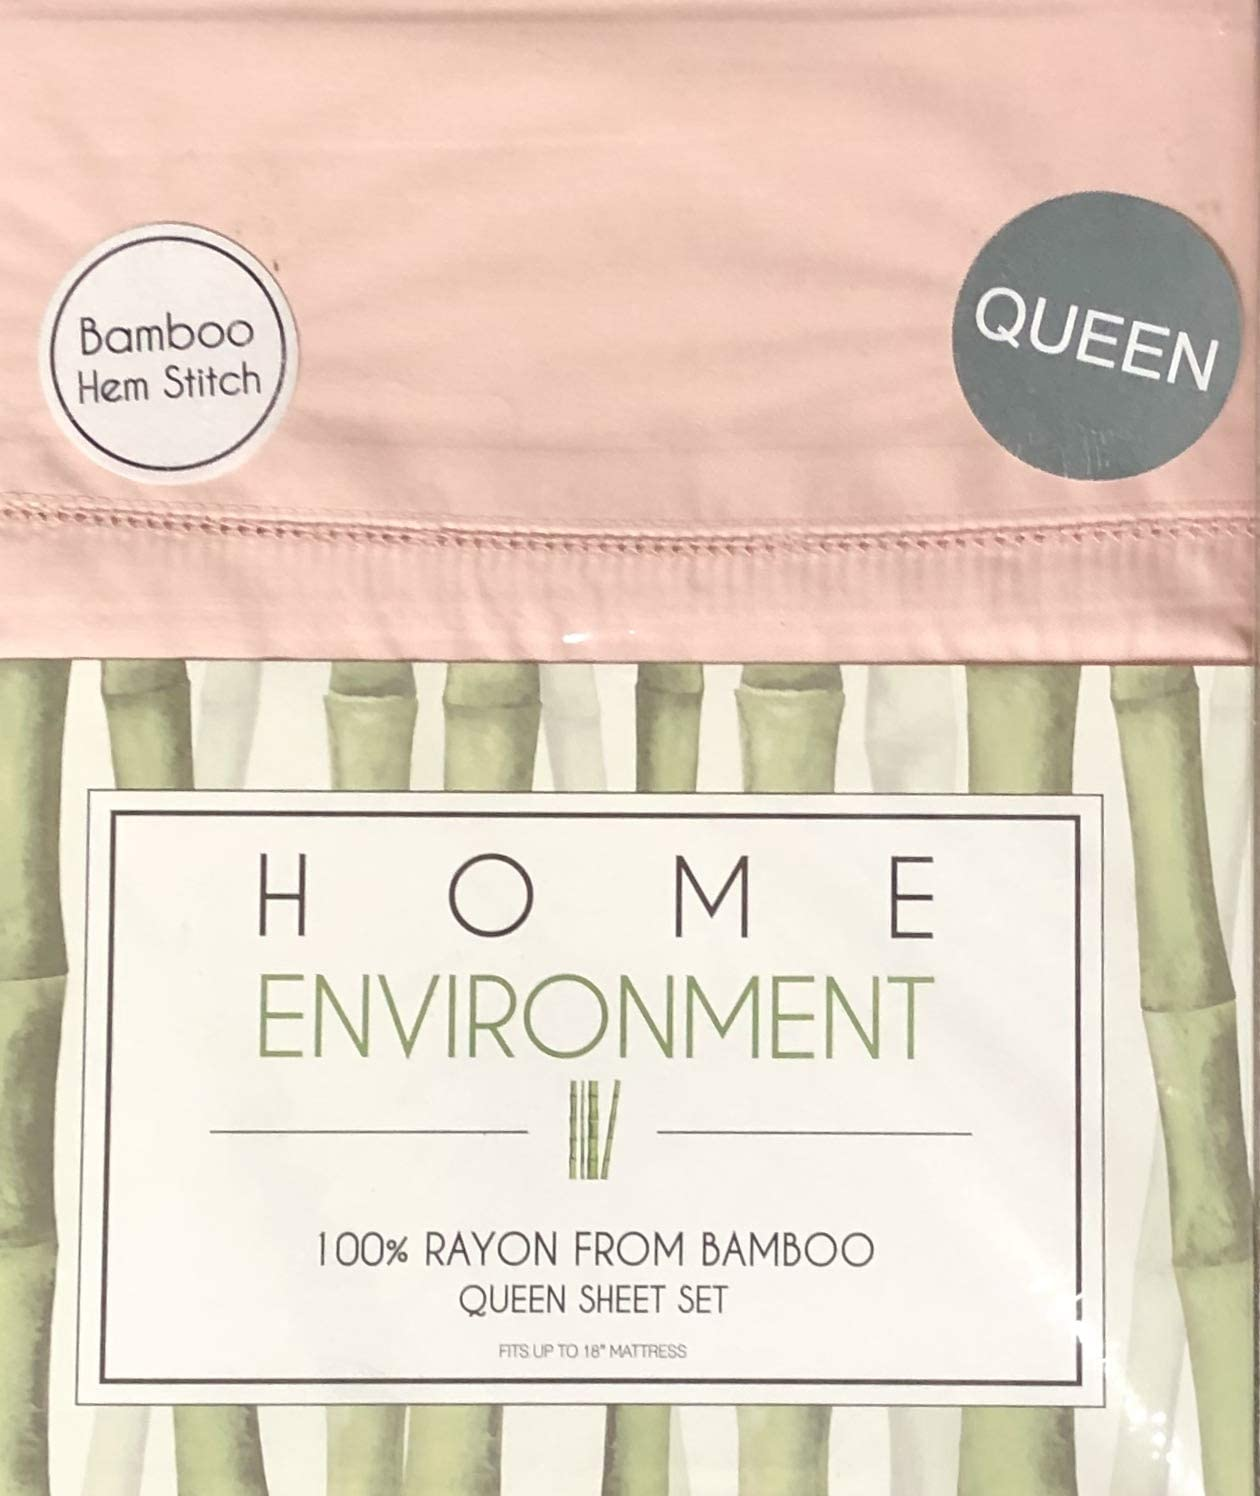 Home Environment Premium Rayon Bamboo (4) Queen Sheet Set Wonderfully Soft in Pink Blush with Hem Stitch